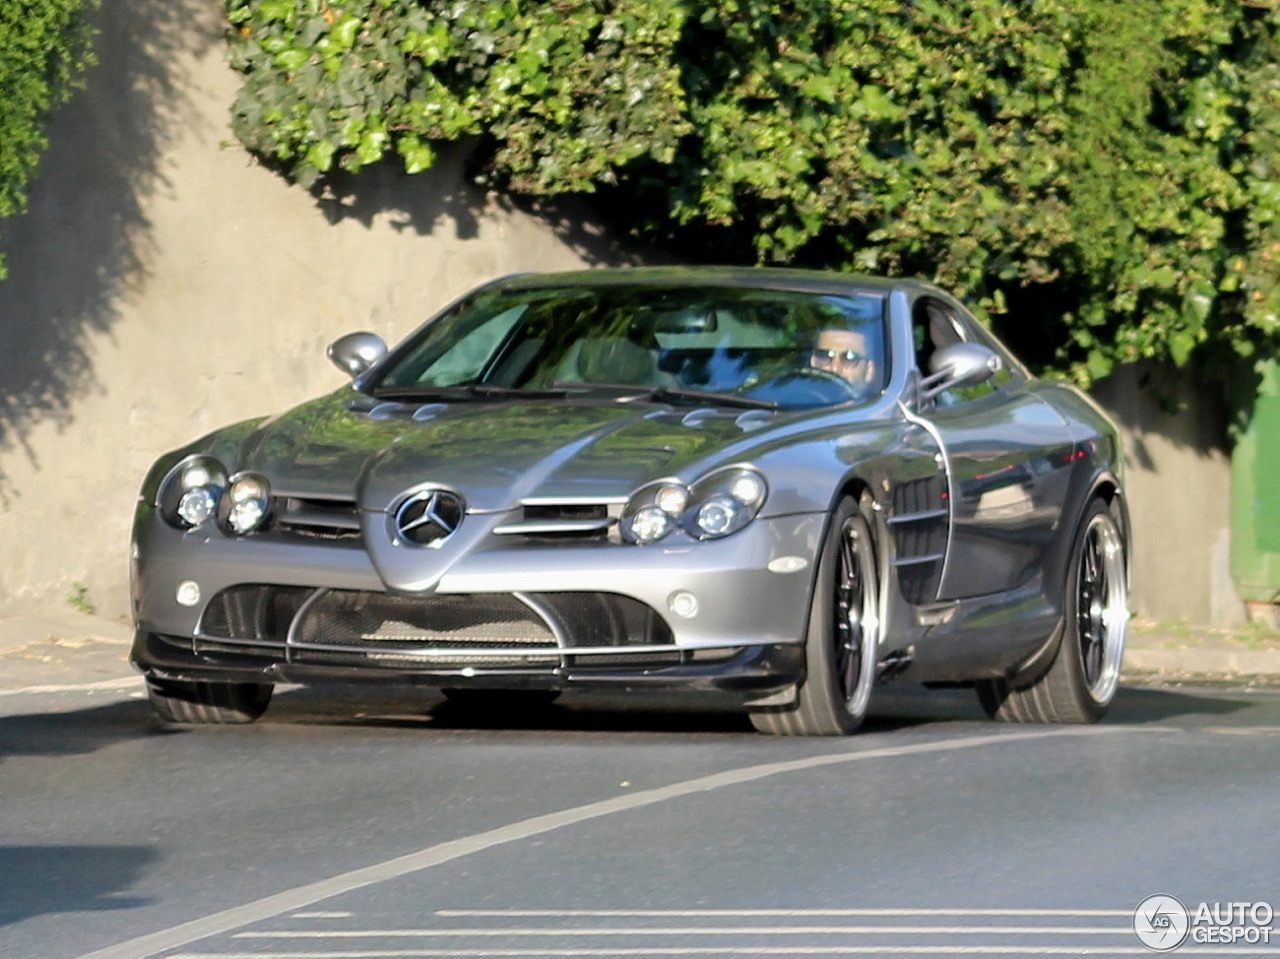 Mercedes benz slr mclaren 722 edition 4 may 2016 for Mercedes benz slr mclaren price